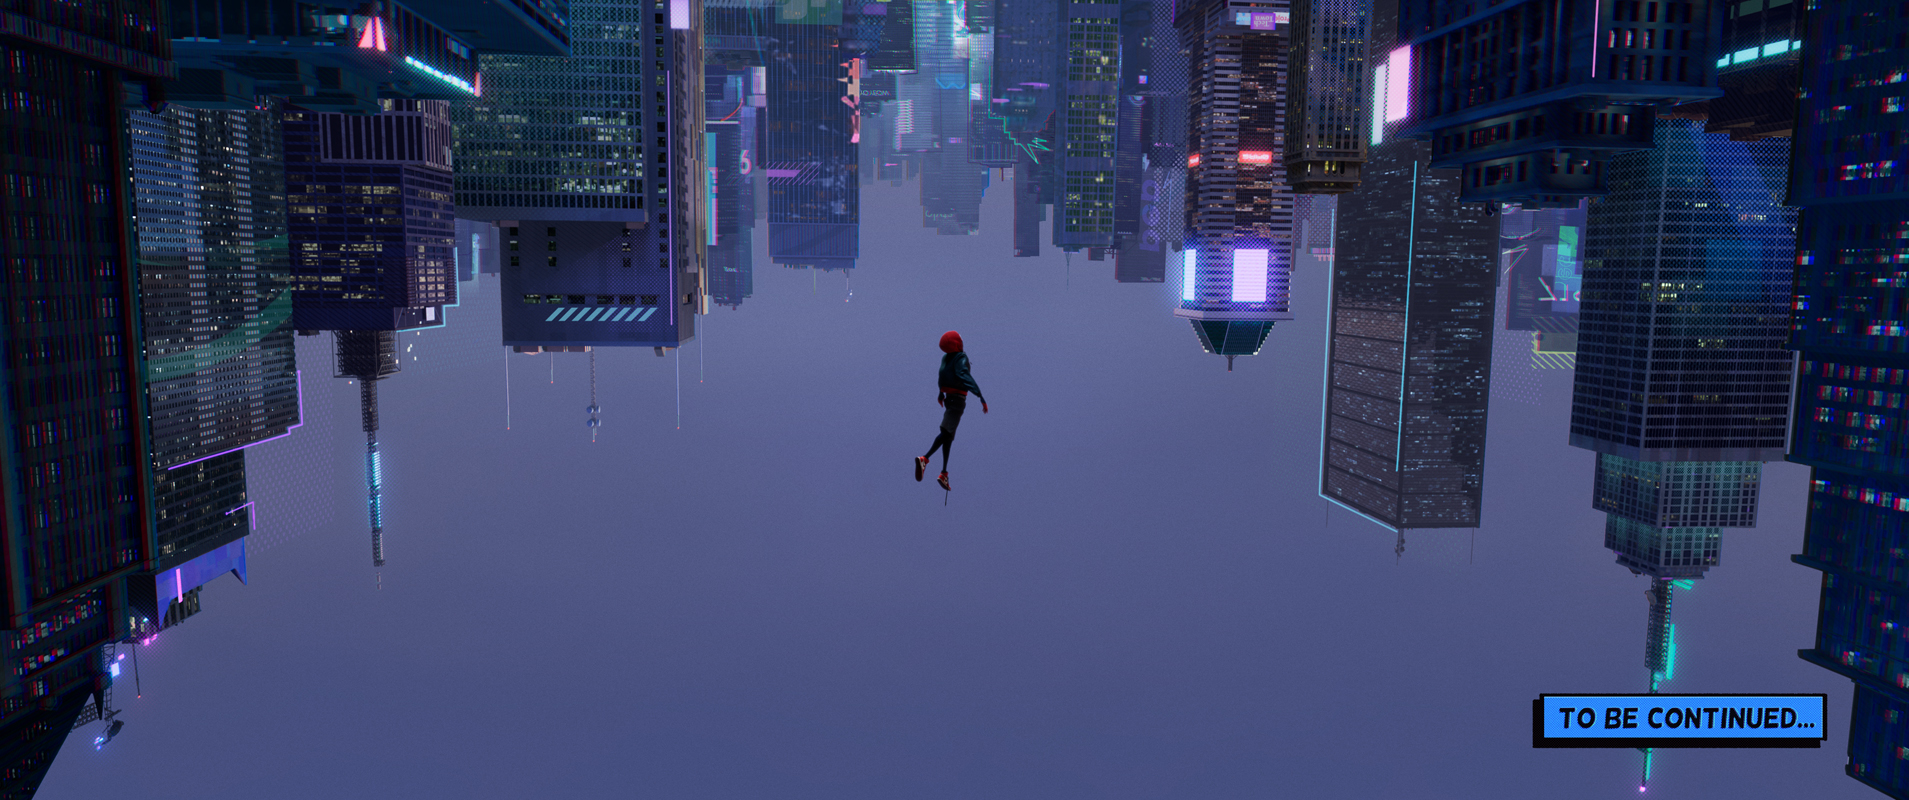 ART OF THE CUT on editing Spider-Man: Into the Spider-Verse 17